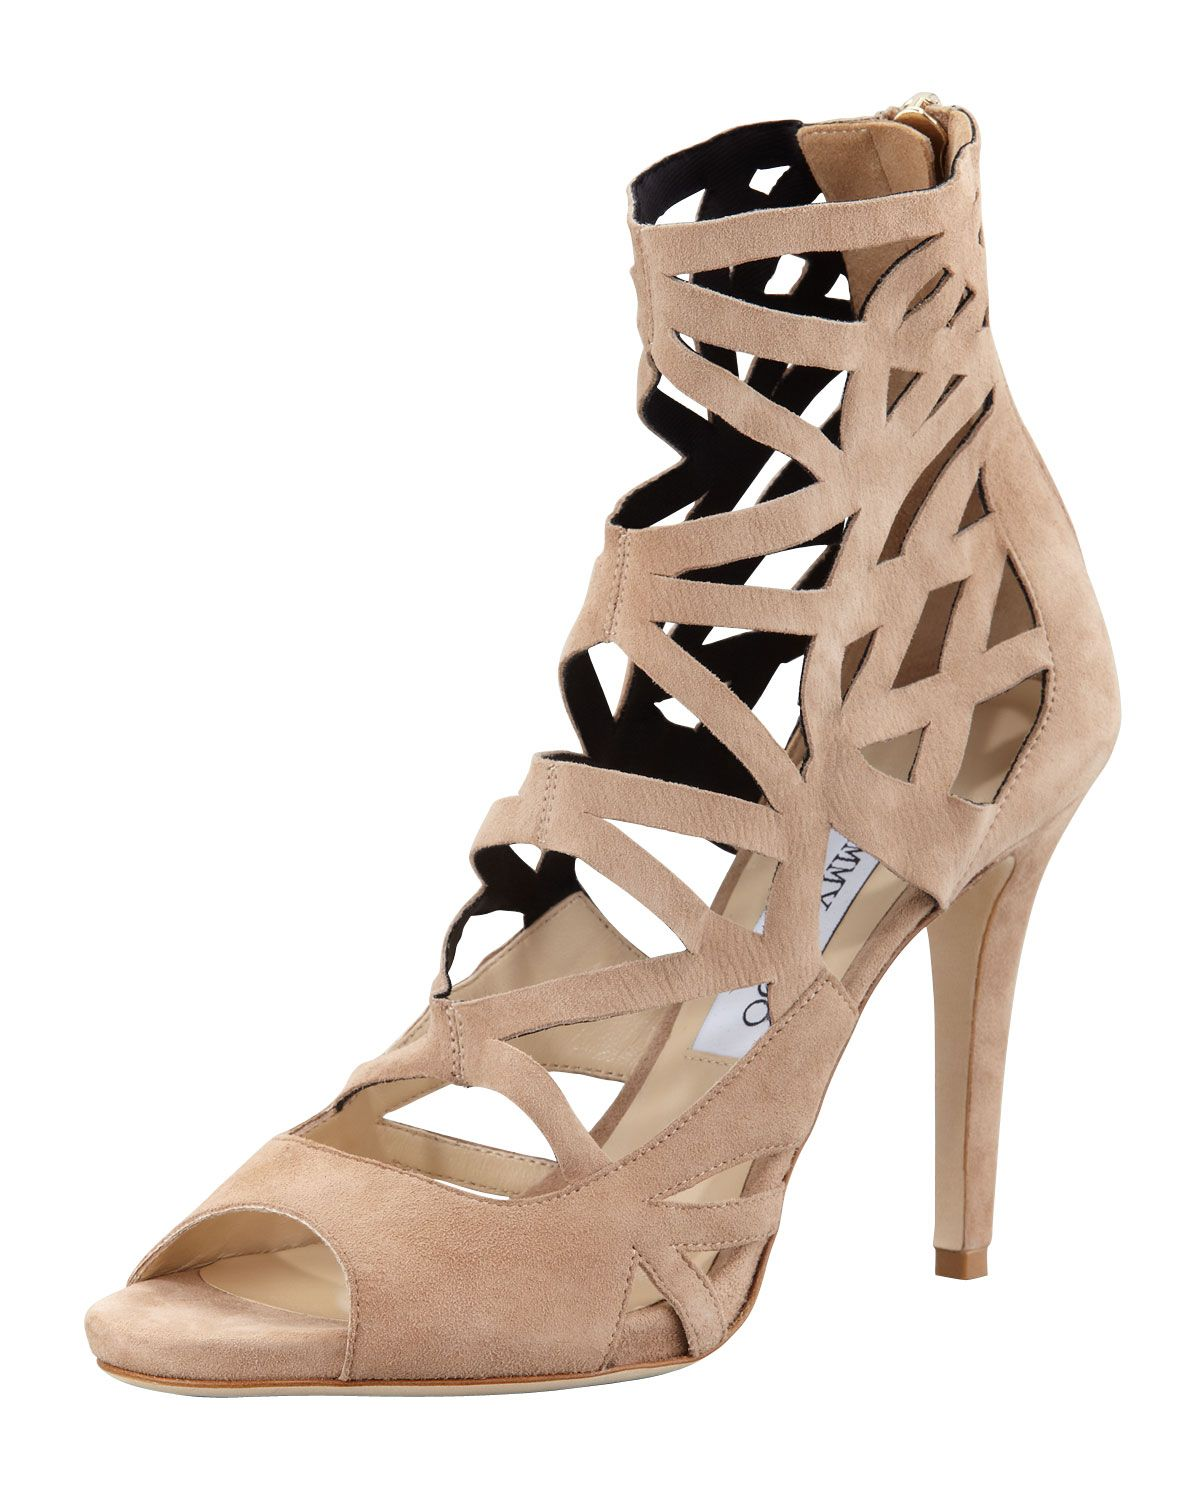 Jimmy Choo Suede Caged Sandals buy cheap with paypal sale collections cheap sale under $60 buy cheap get to buy sale cheap online aVykzW06